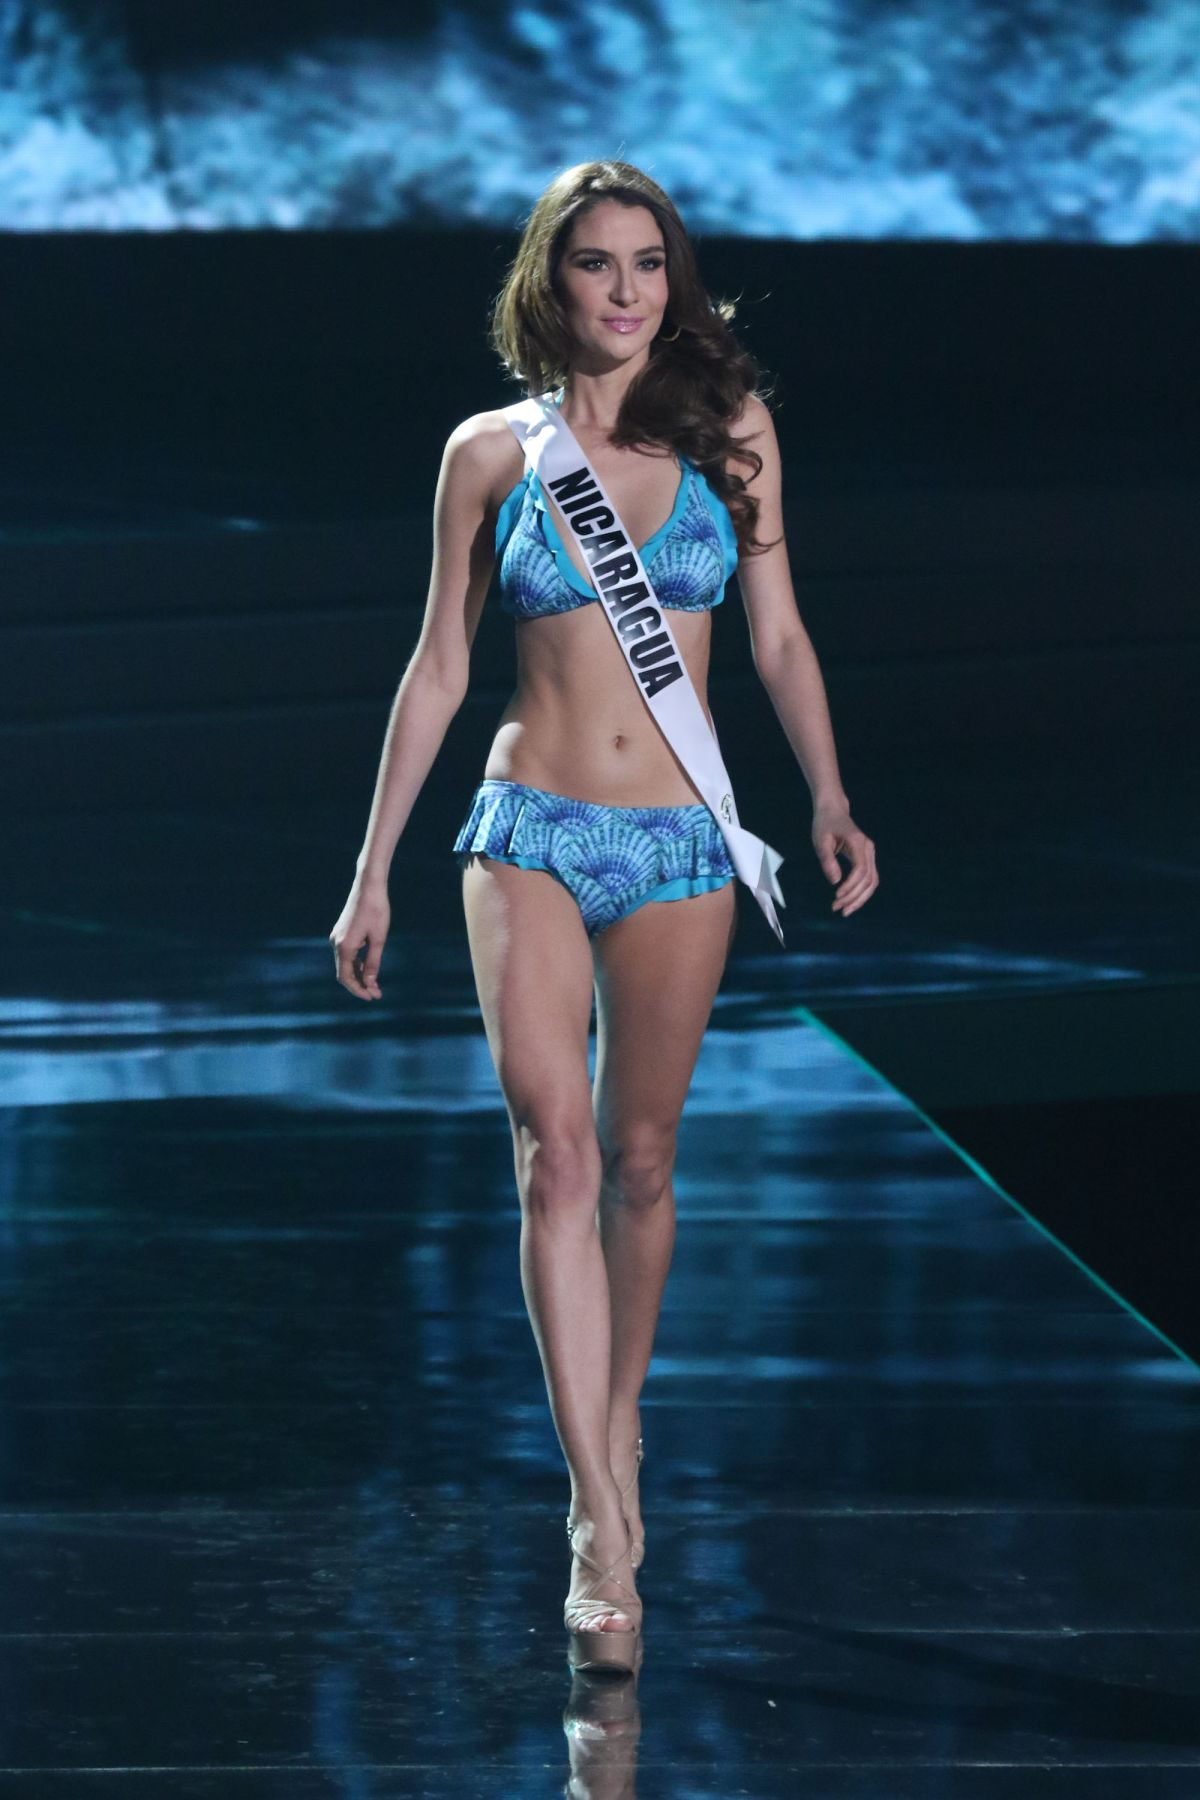 DANIELA TORRES - Miss Universe 2015 Preliminary Round 12/16/2015